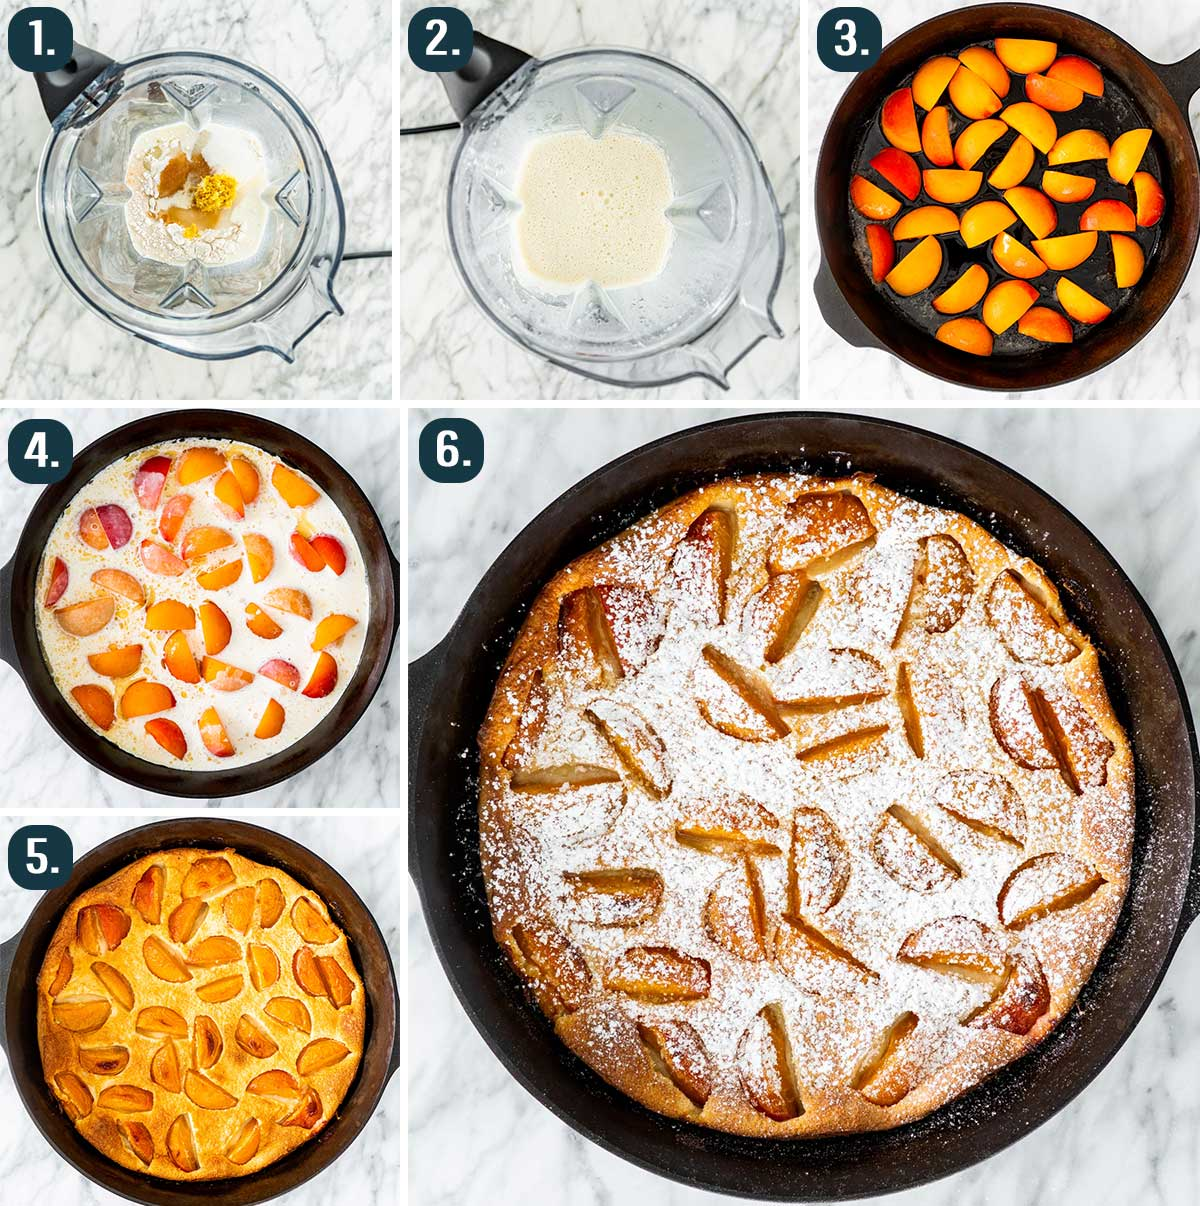 detailed process shots showing how to make apricot clafoutis